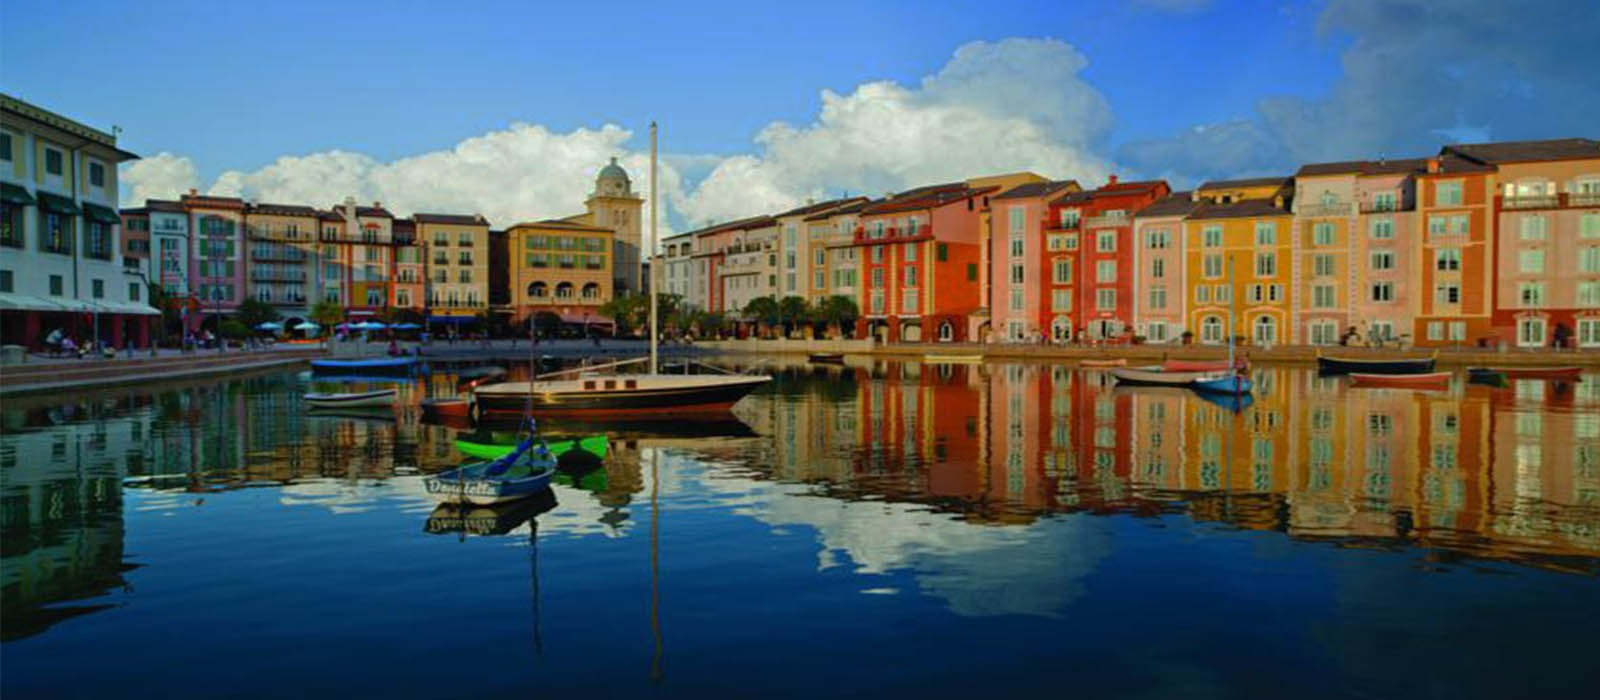 universal-loews-portofino-bay-orlando-holiday-header3